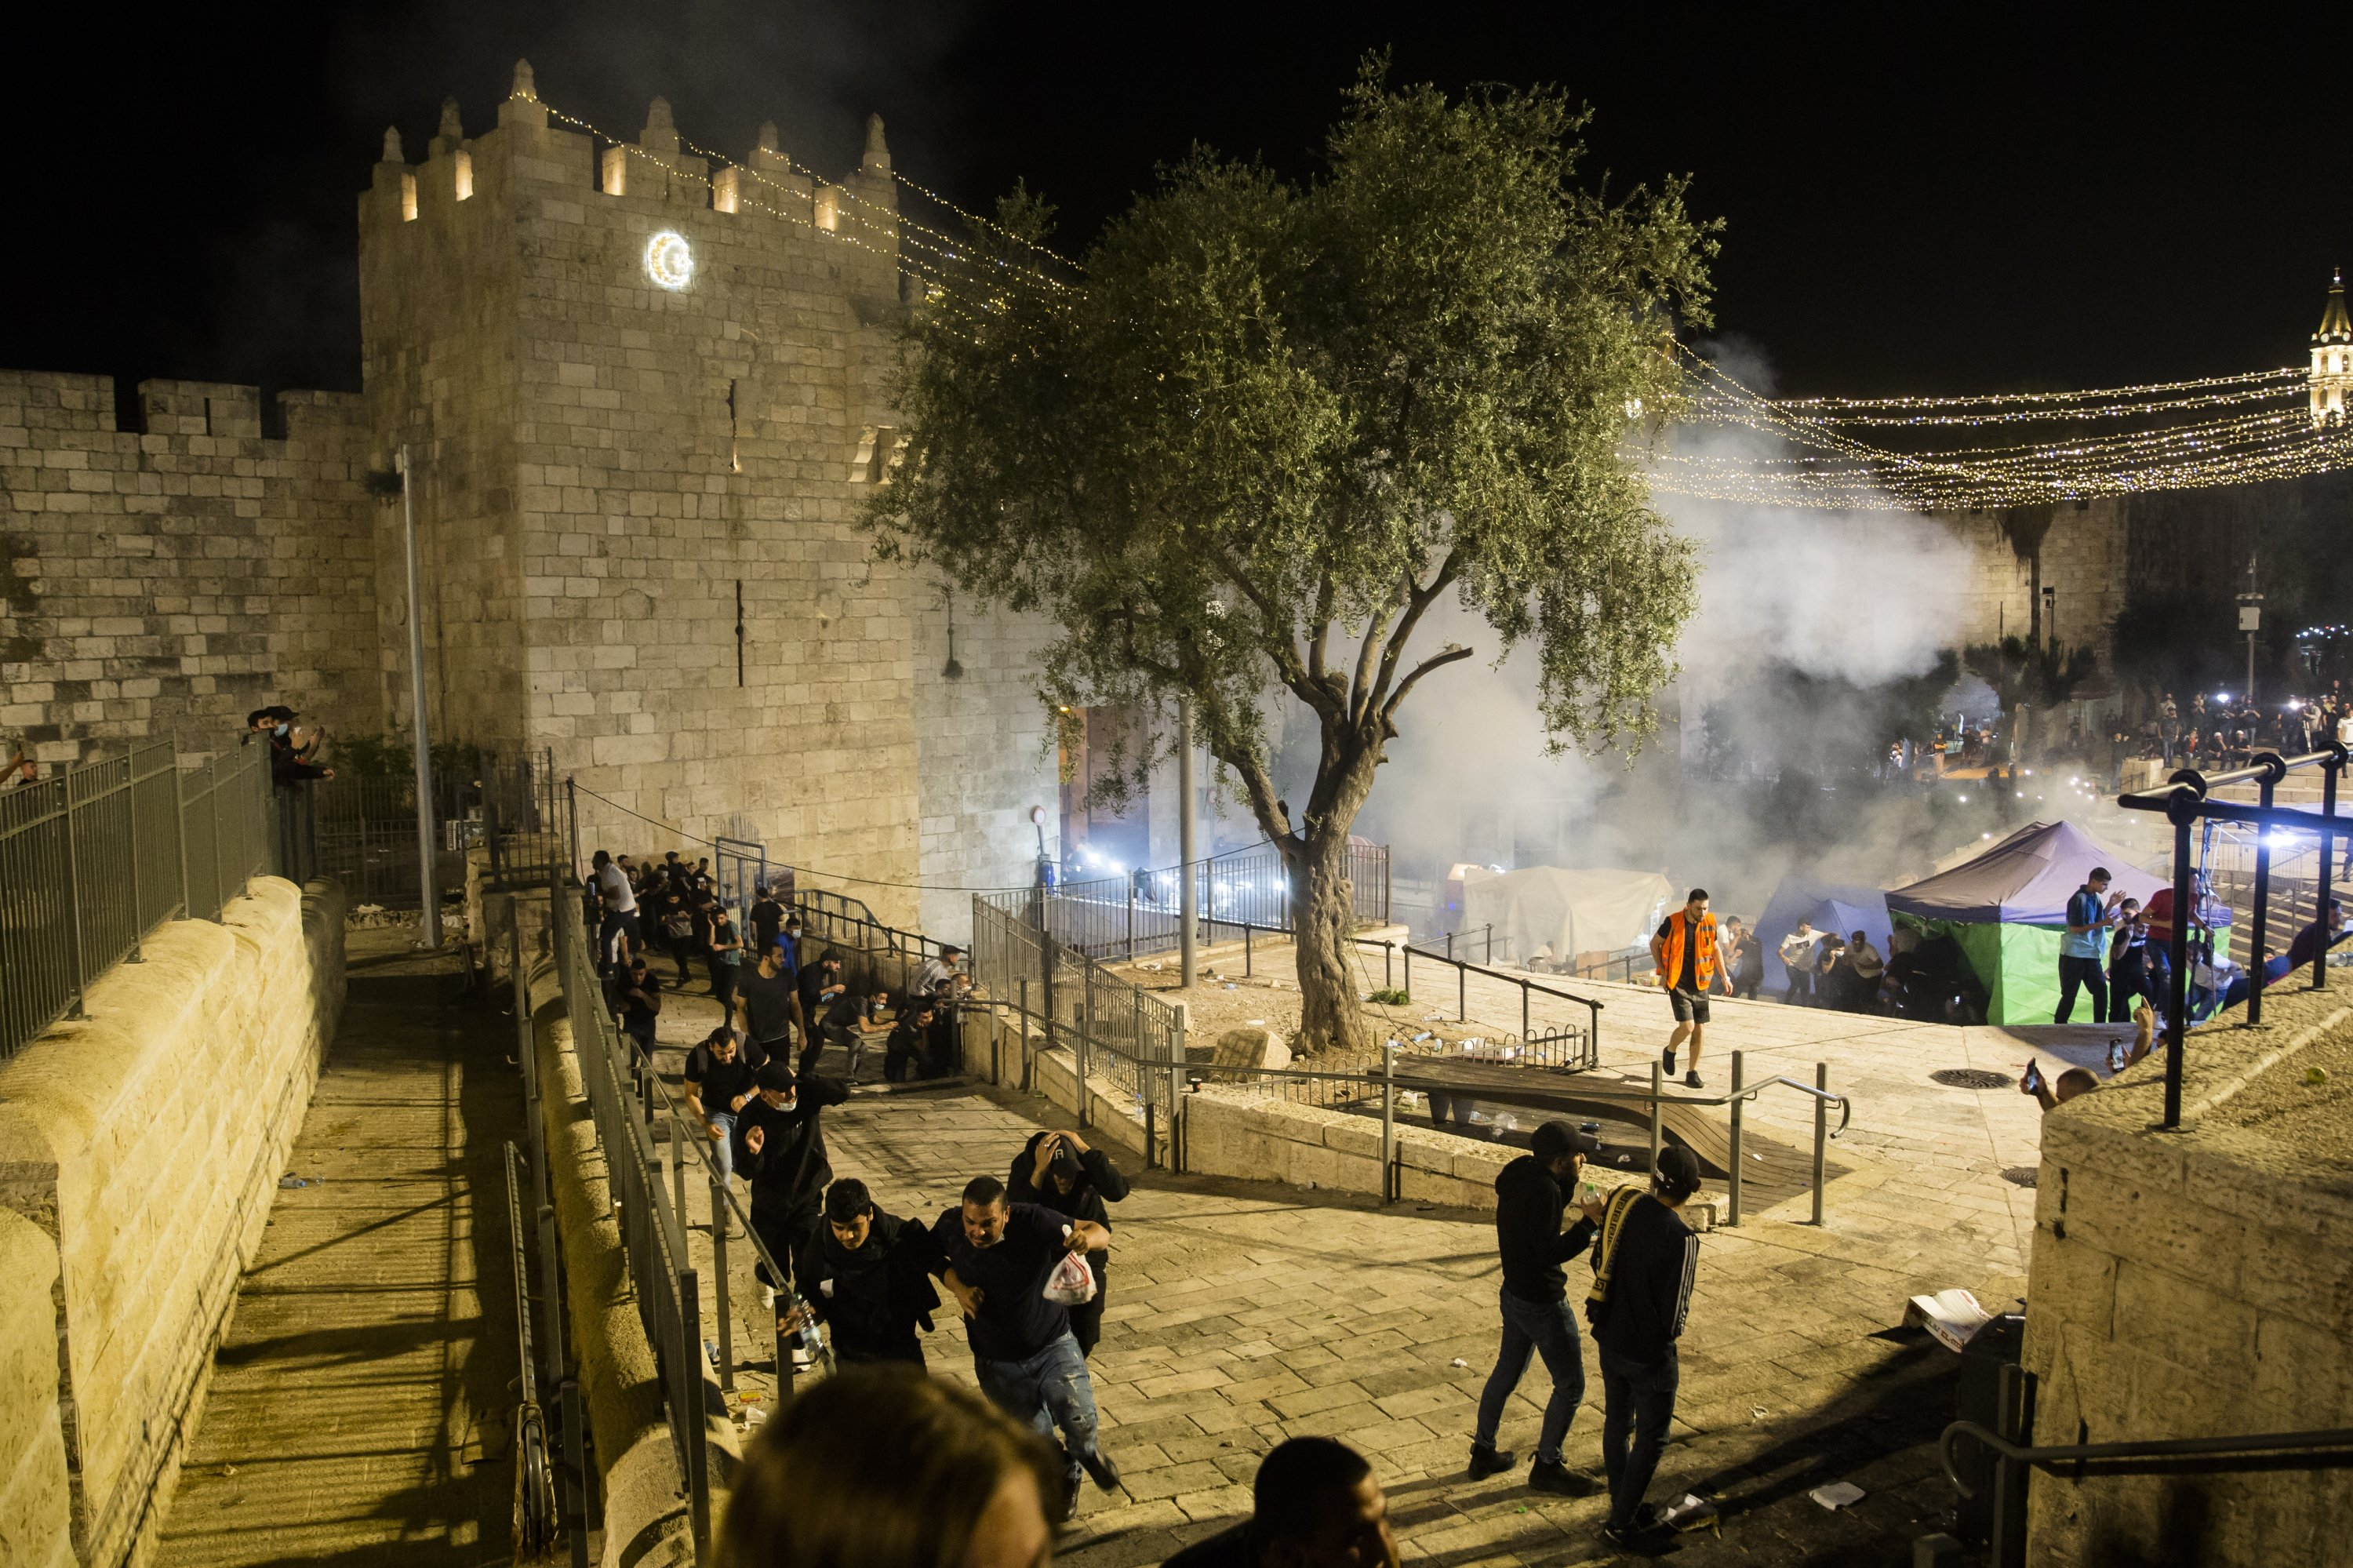 Palestinians escape from a stun grenade fired by Israeli forces at Damascus Gate during the Islamic holy month of Ramadan, in Old City, East Jerusalem, occupied Palestine, May 8, 2021. (Photo by Getty Images)